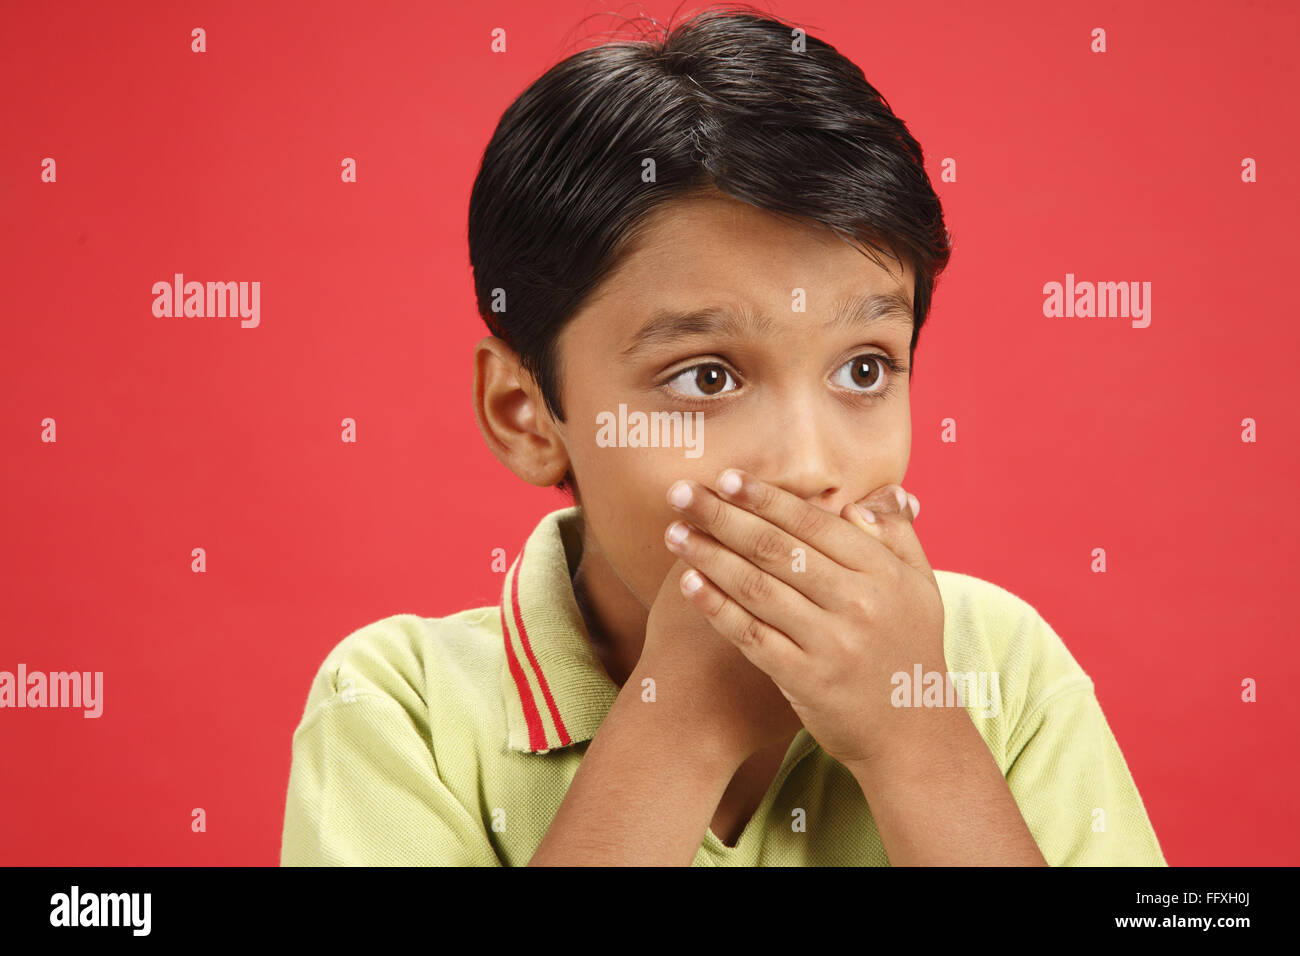 Ten year old boy kept both hand palms crossed on his mouth MR#703V - Stock Image